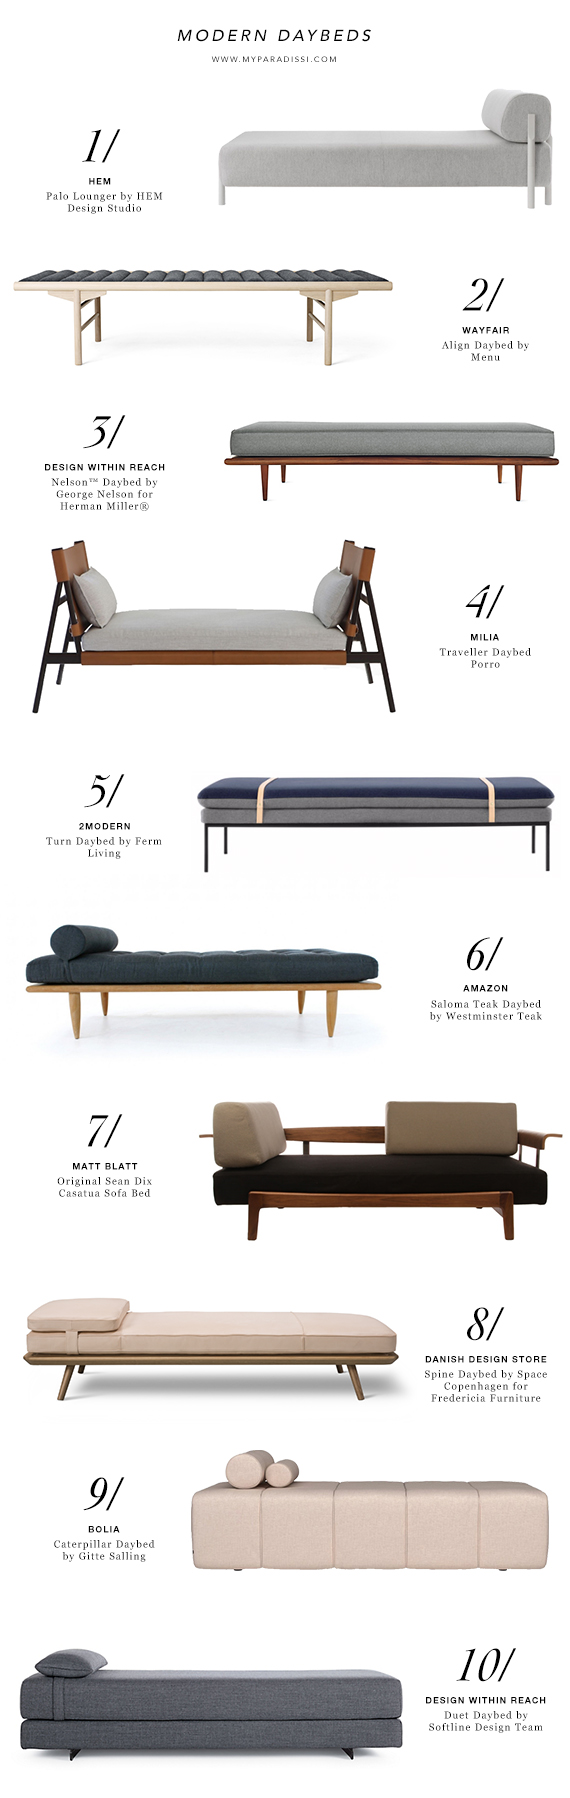 10 best modern daybeds